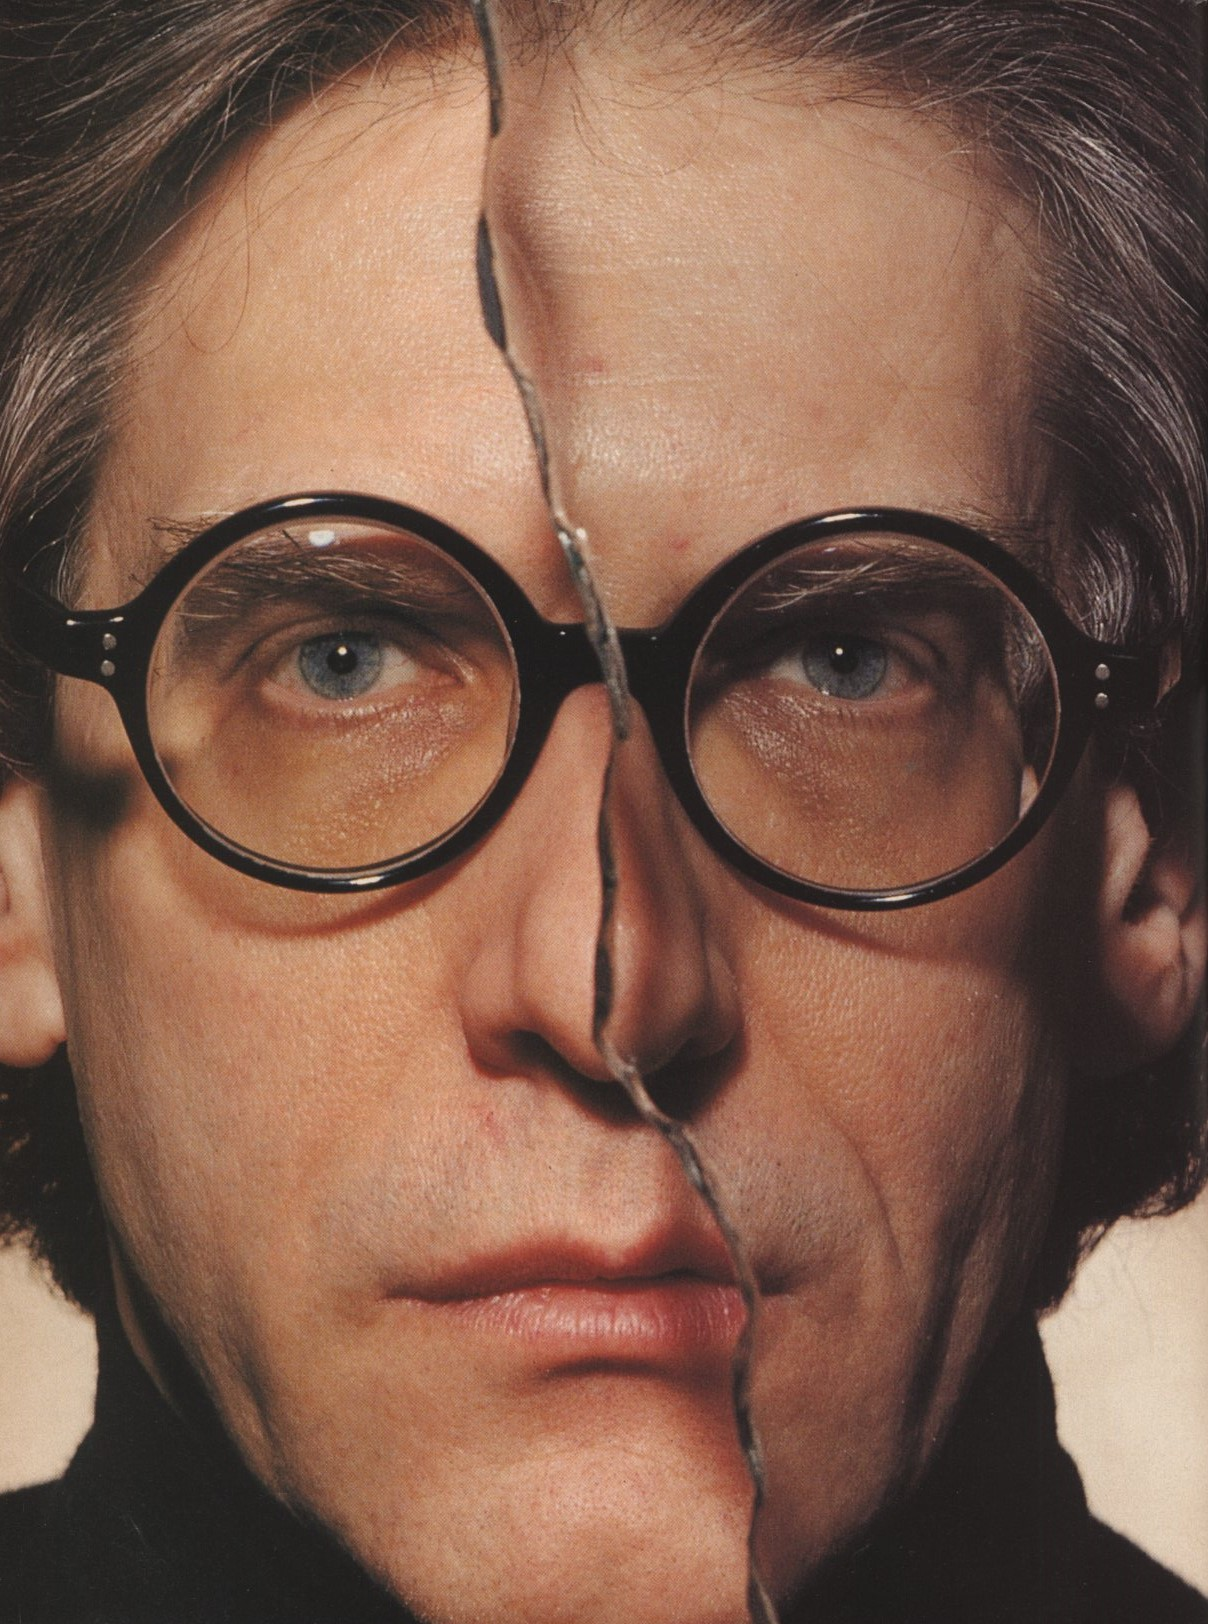 DAVID CRONENBERG PHOTOGRAPHY PAUL TOZER DAZED & CONFUSED 25 OCTOBER 1996